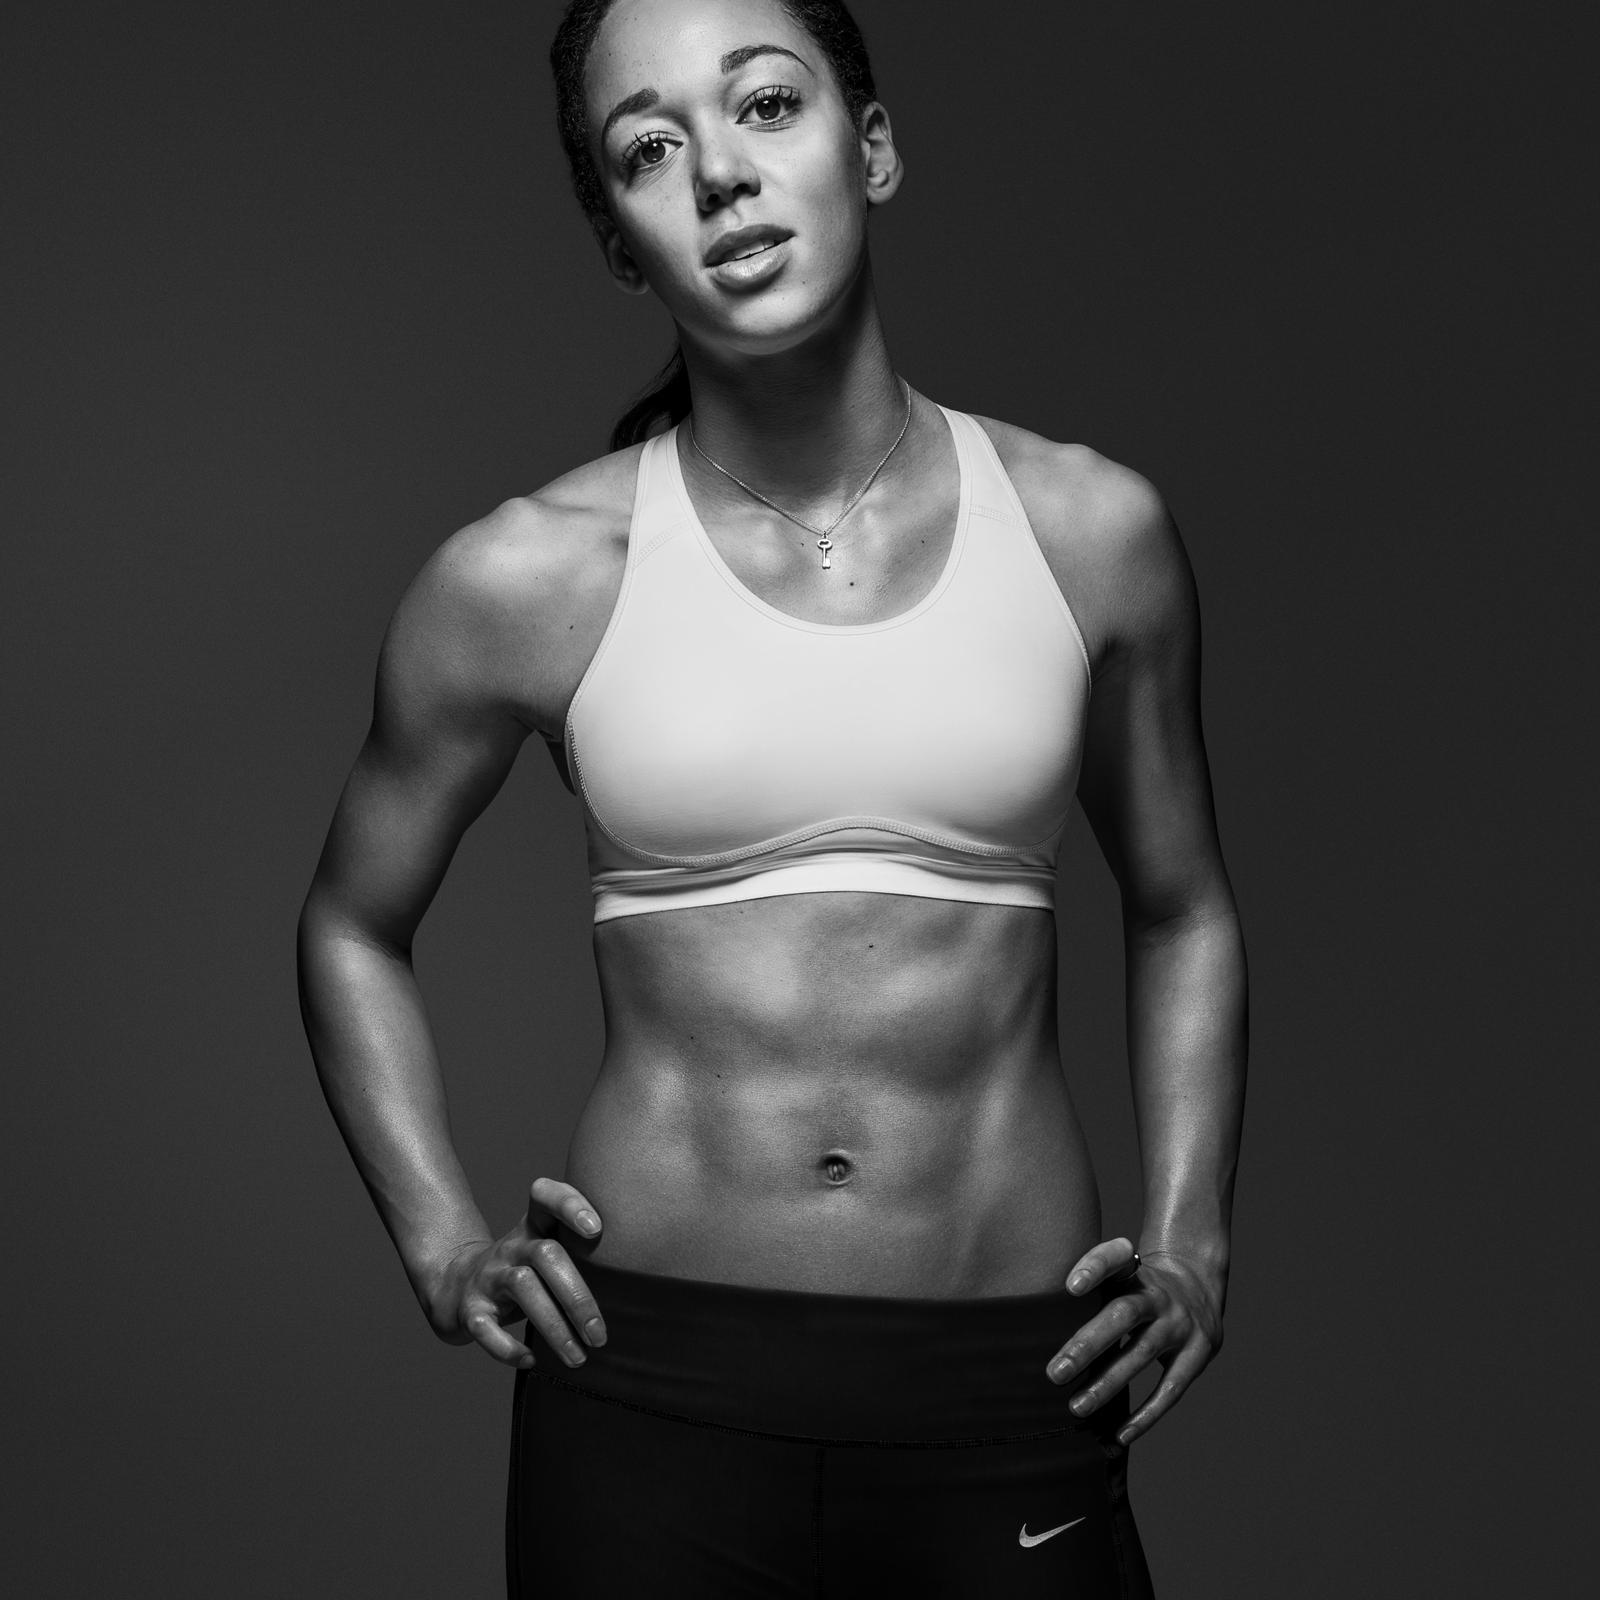 Nike zoomsquad katarina johnson thompson square 1600 porto 6 square 1600